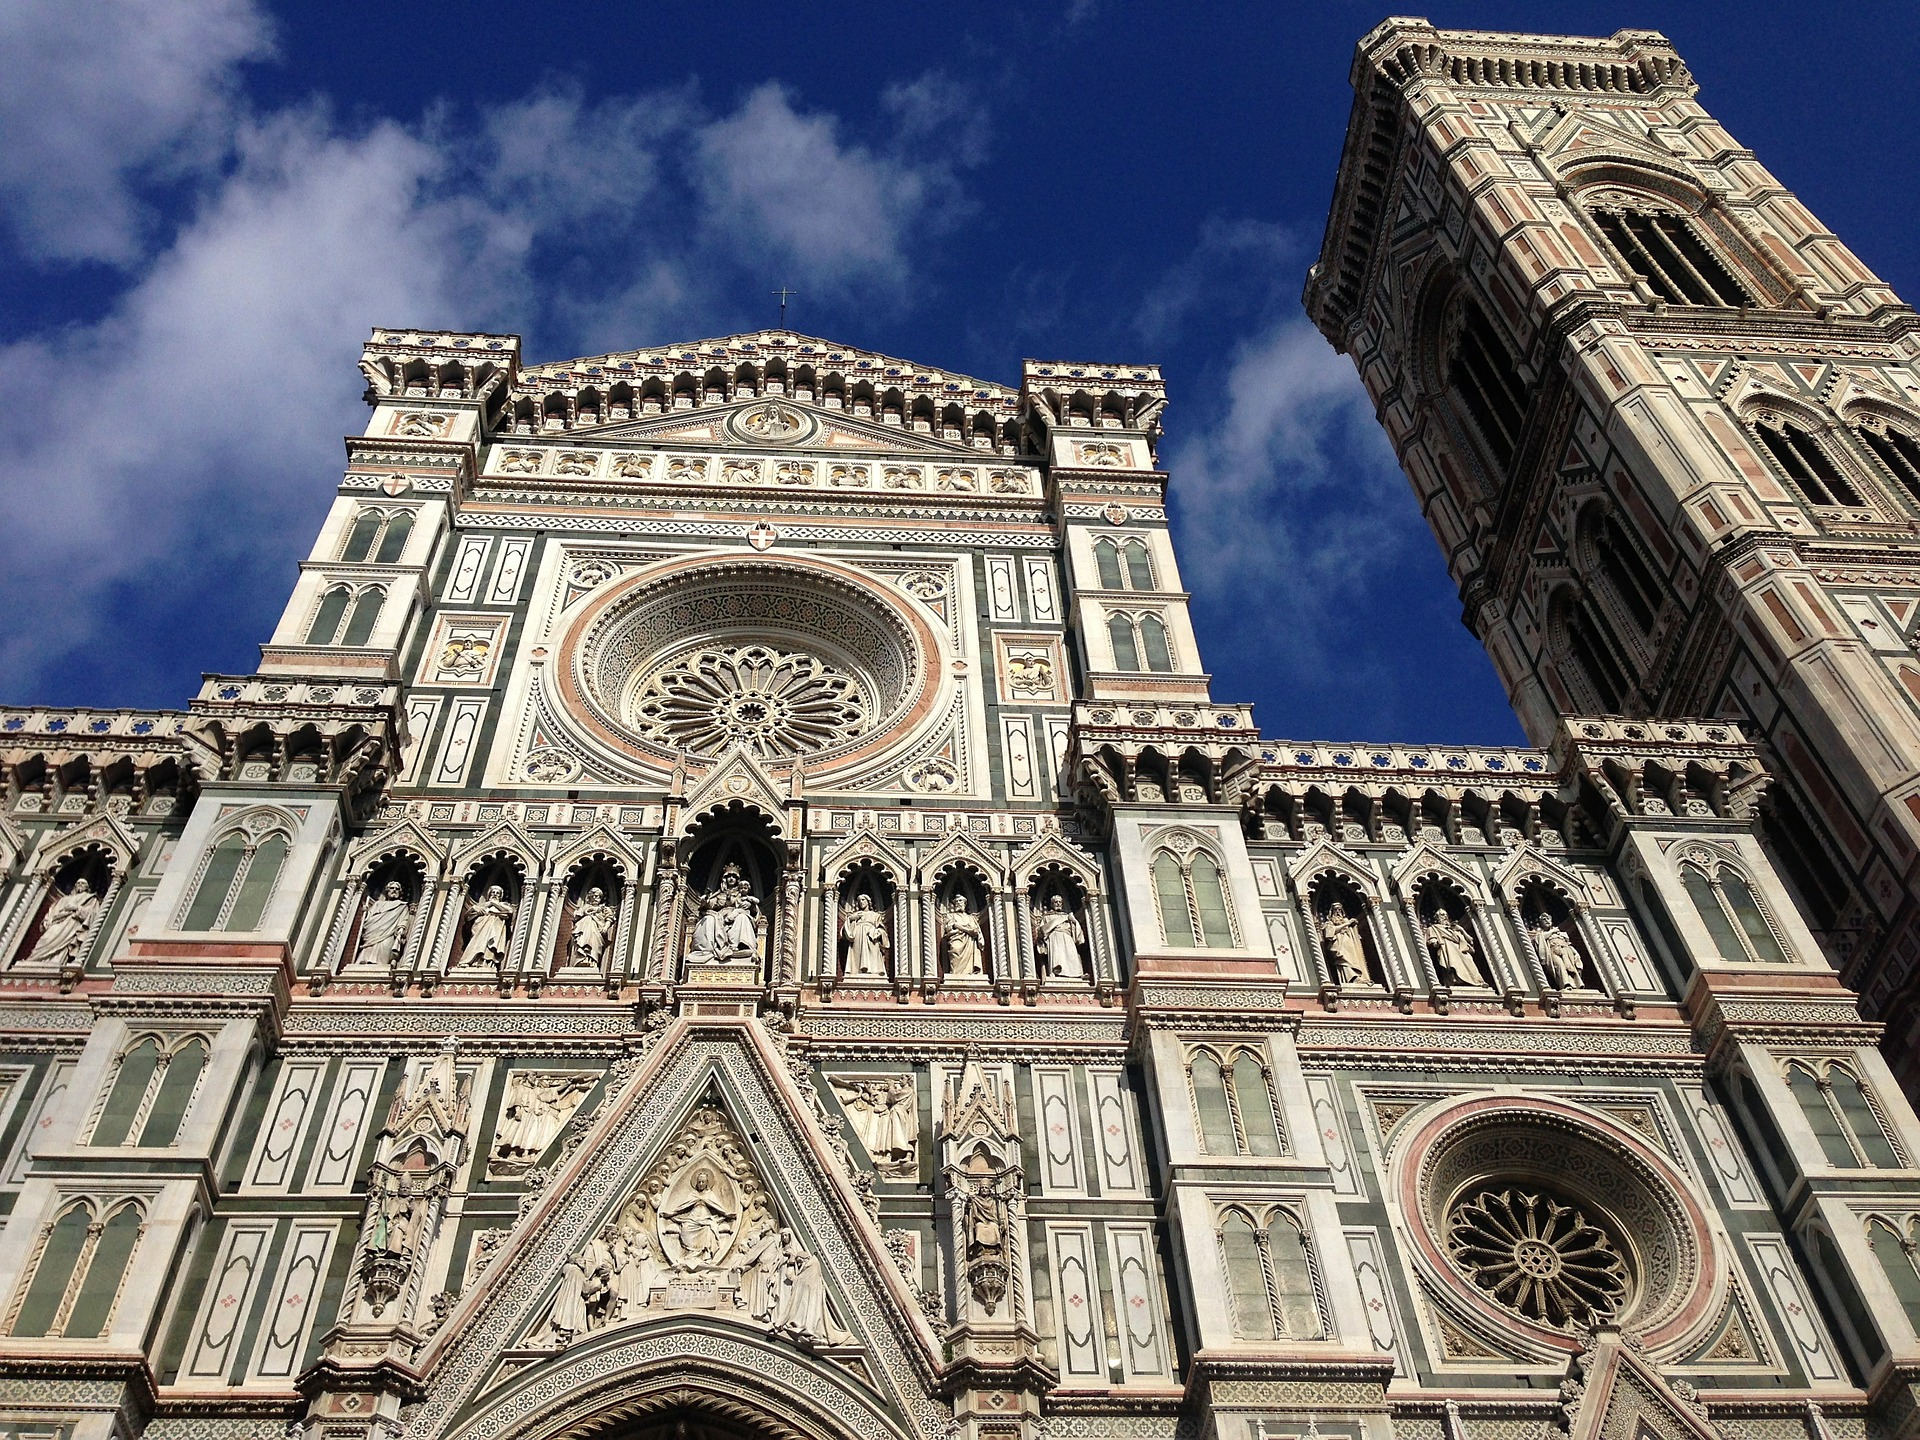 The Cattedrale di Santa Maria del Fiore is the main church of Florence, Italy